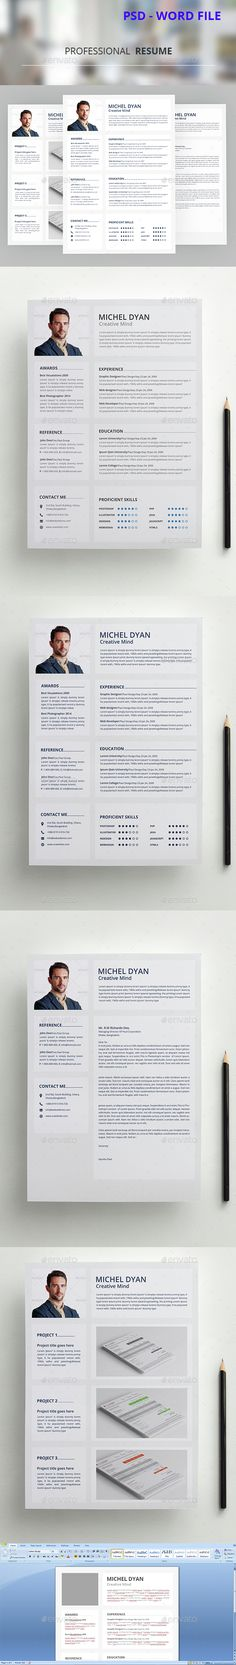 Resume Resume cv, Cv template and Ai illustrator - professional resume templates free download